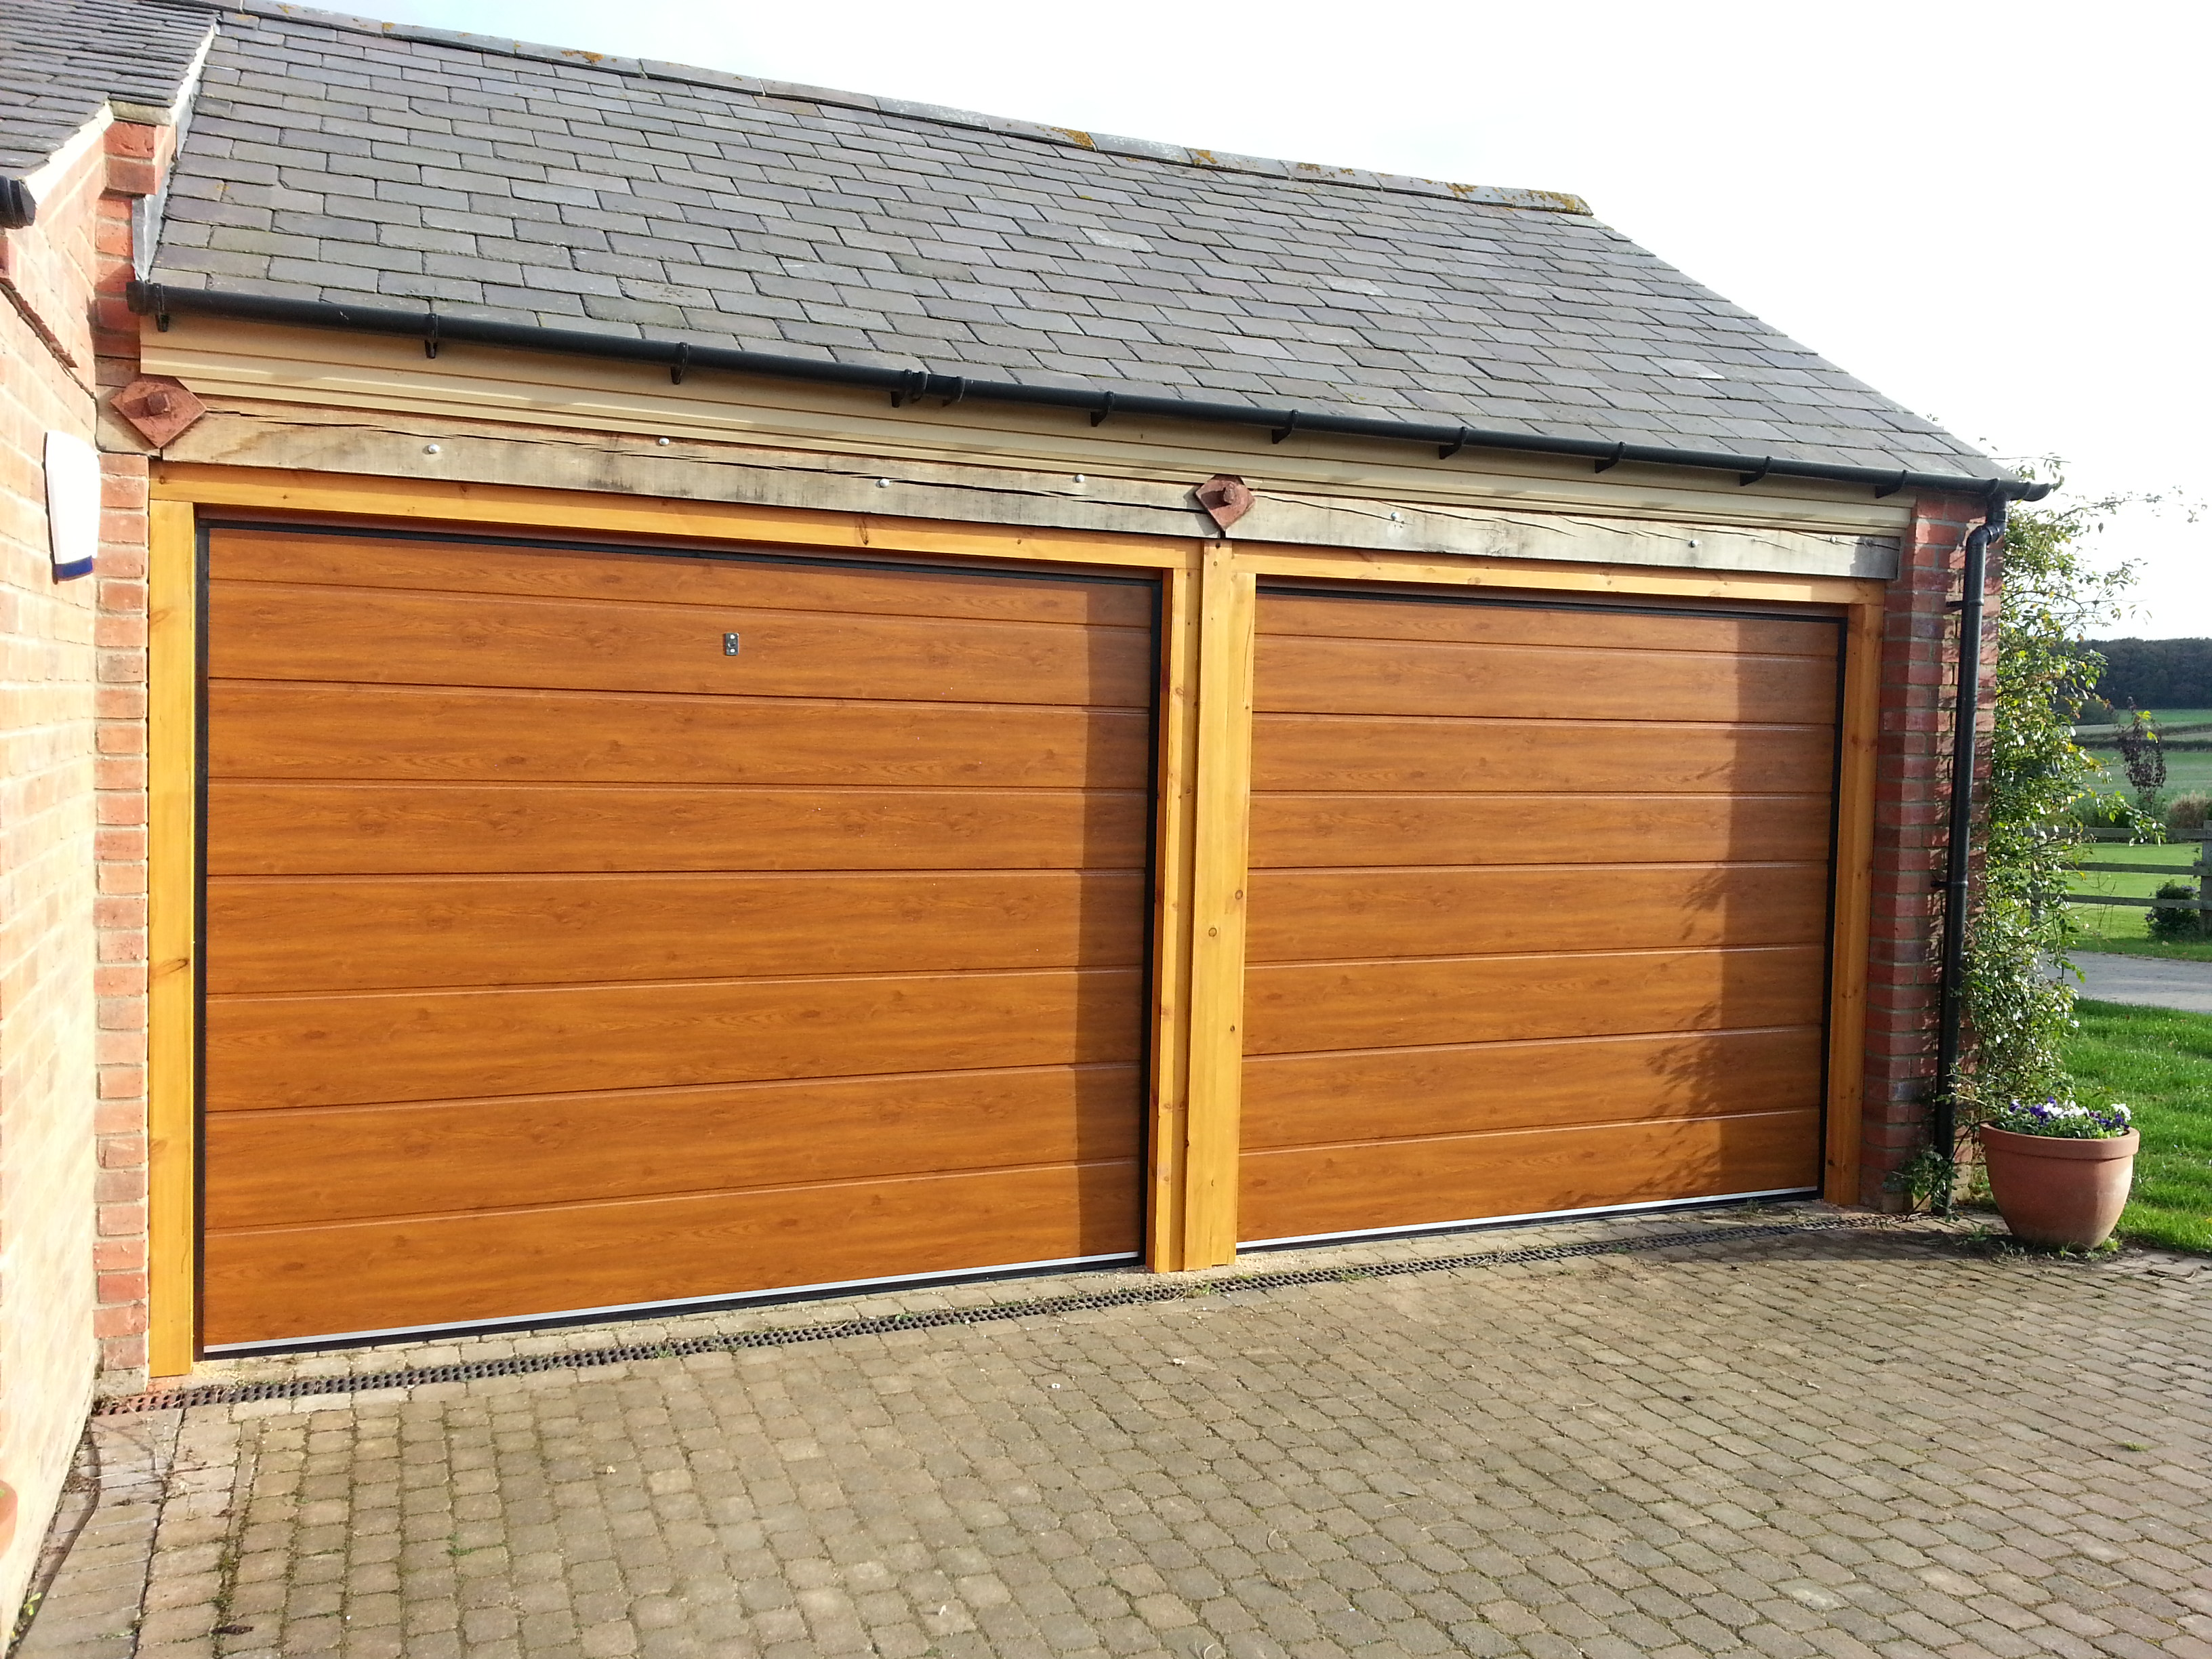 2448 #C28209 New Garage Doors Grantham – The Garage Door Company Grantham  save image Garage Doors New 36873264